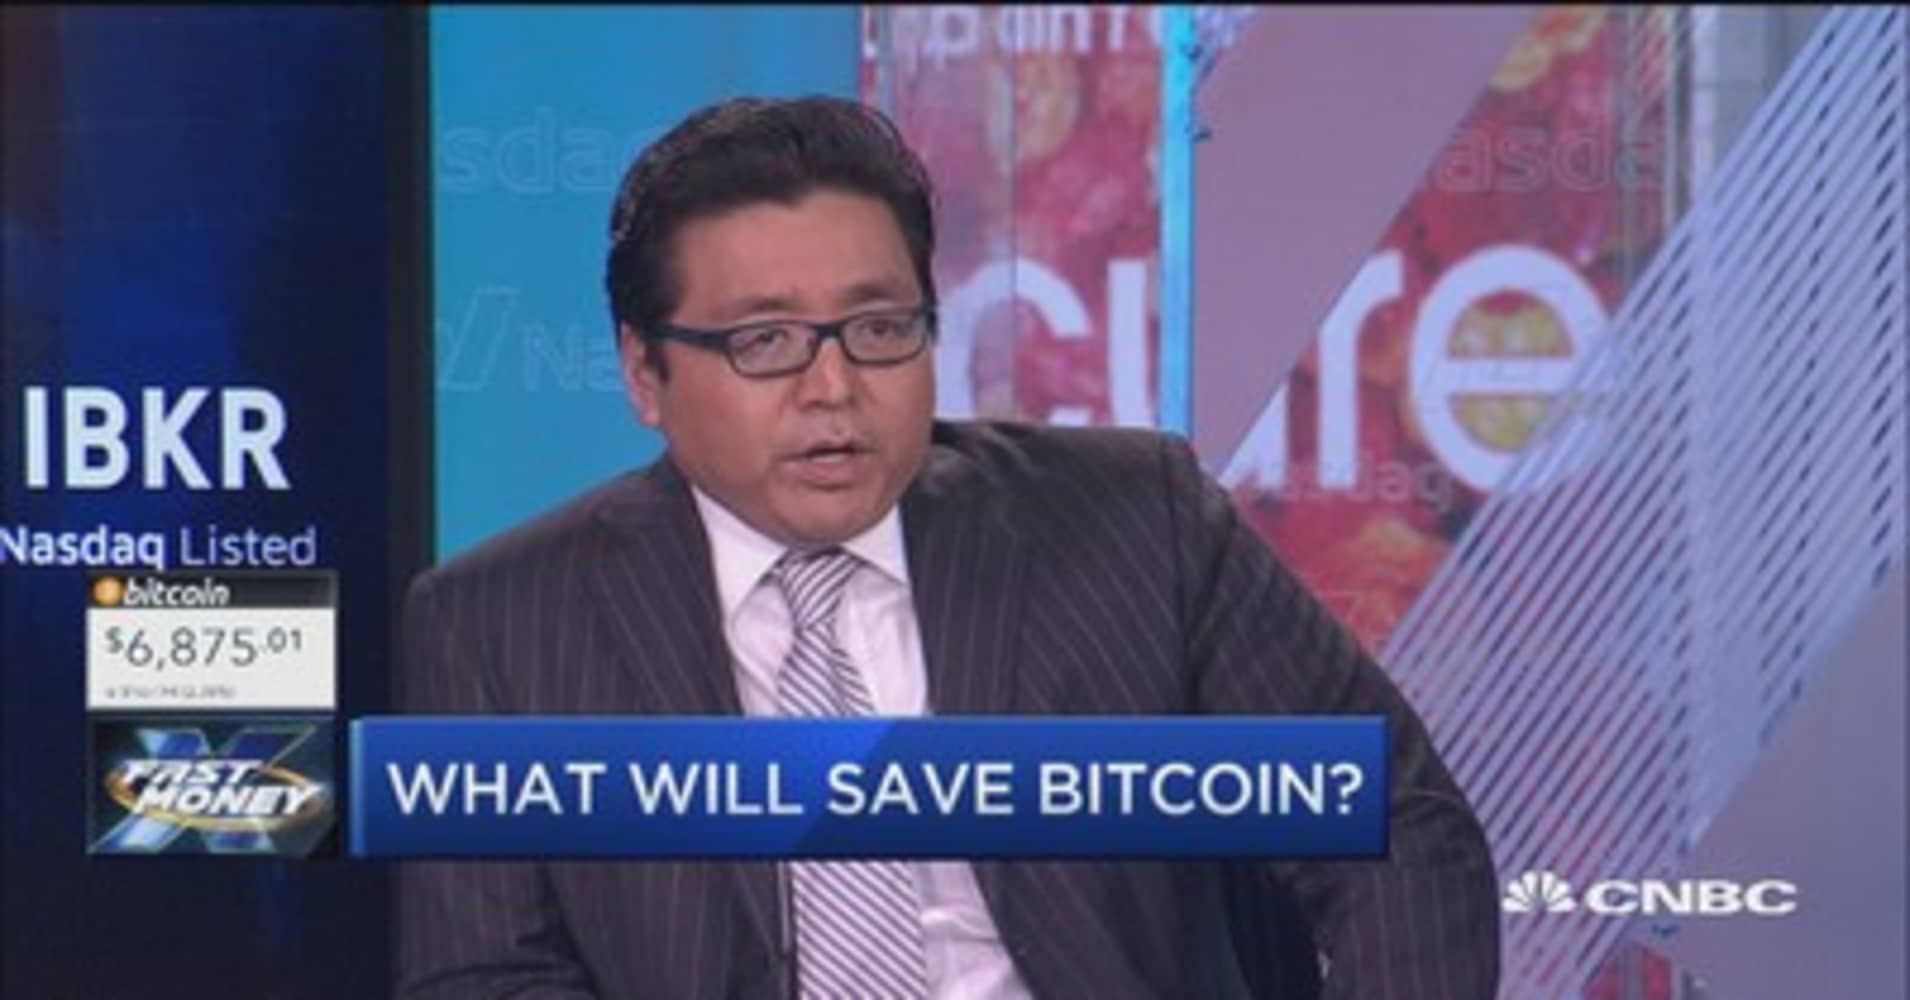 With bitcoin back below $7K, Fundstrat's Tom Lee reveals what will save the cryptocurrency